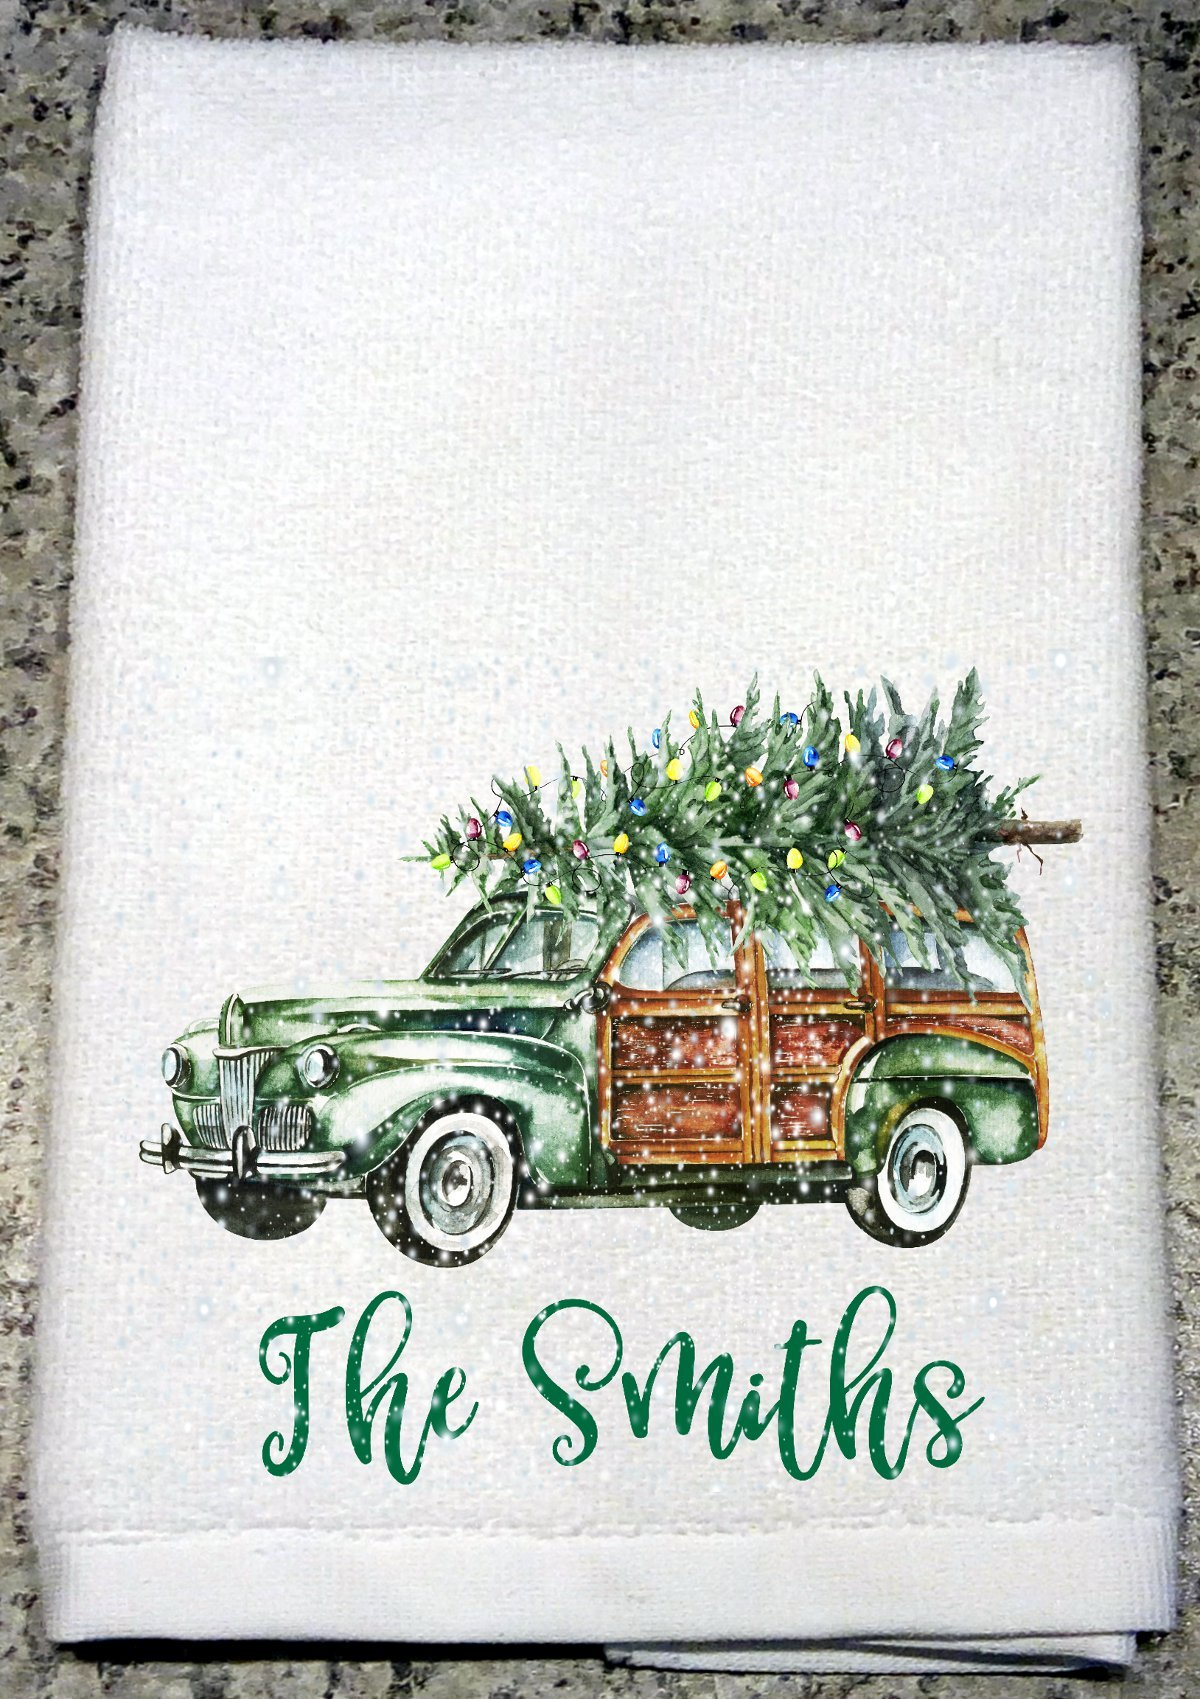 Vintage Woody Station Wagon with a Lighted Tree on Roof in Falling Snow with Phrase Kitchen Towel